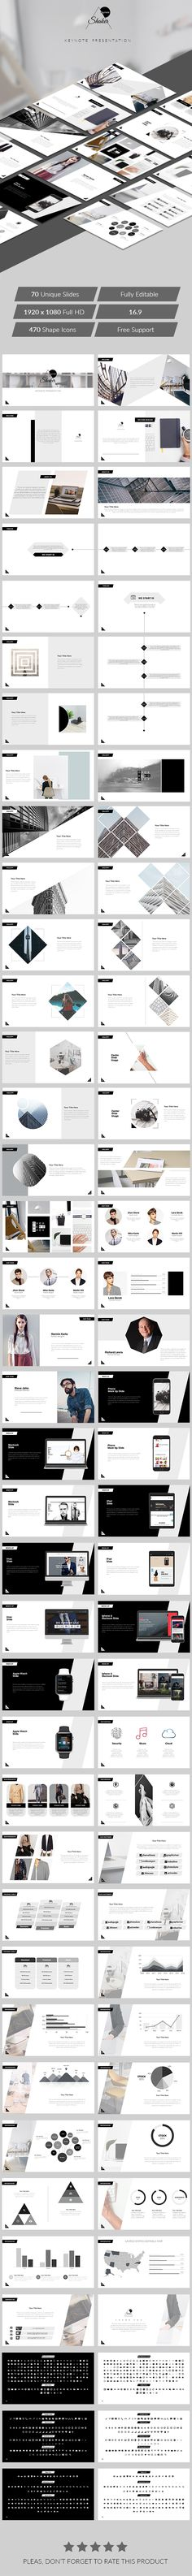 Clean presentation powerpoint templates pinterest template shaker keynote presentation keynote templates presentation templates toneelgroepblik Image collections